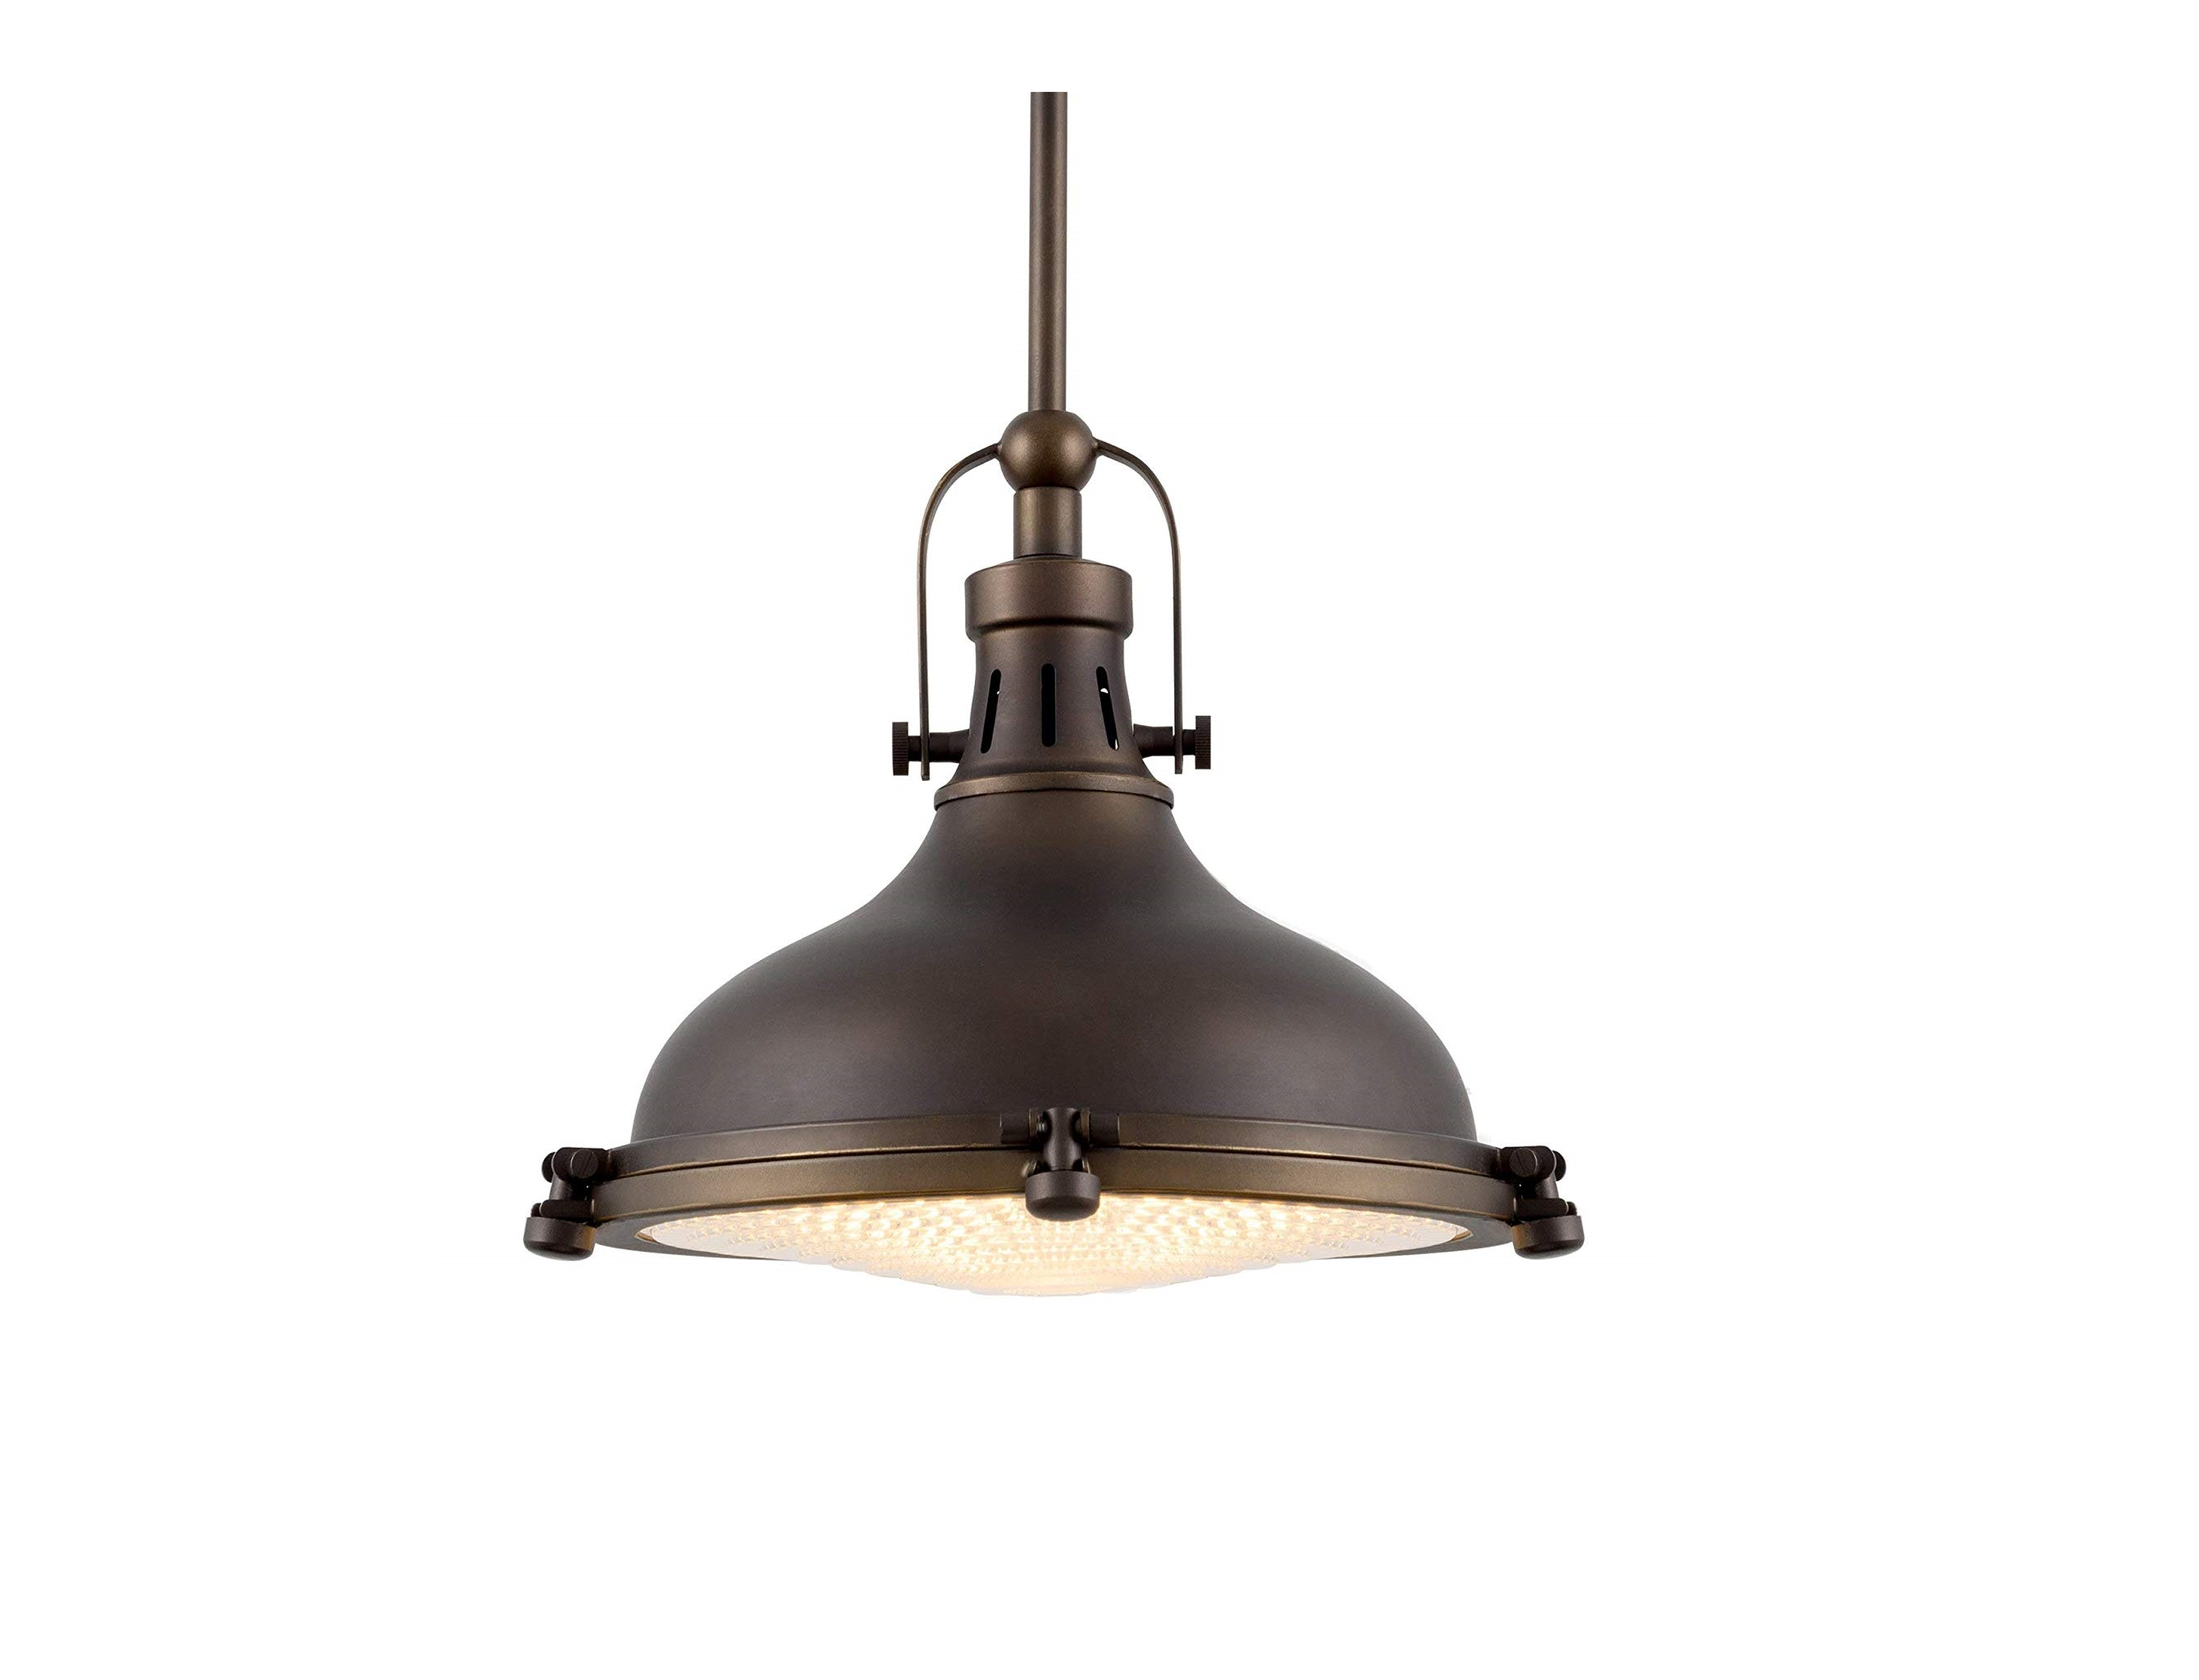 Top 5 Best Pendant Lights for Kitchen in 2019